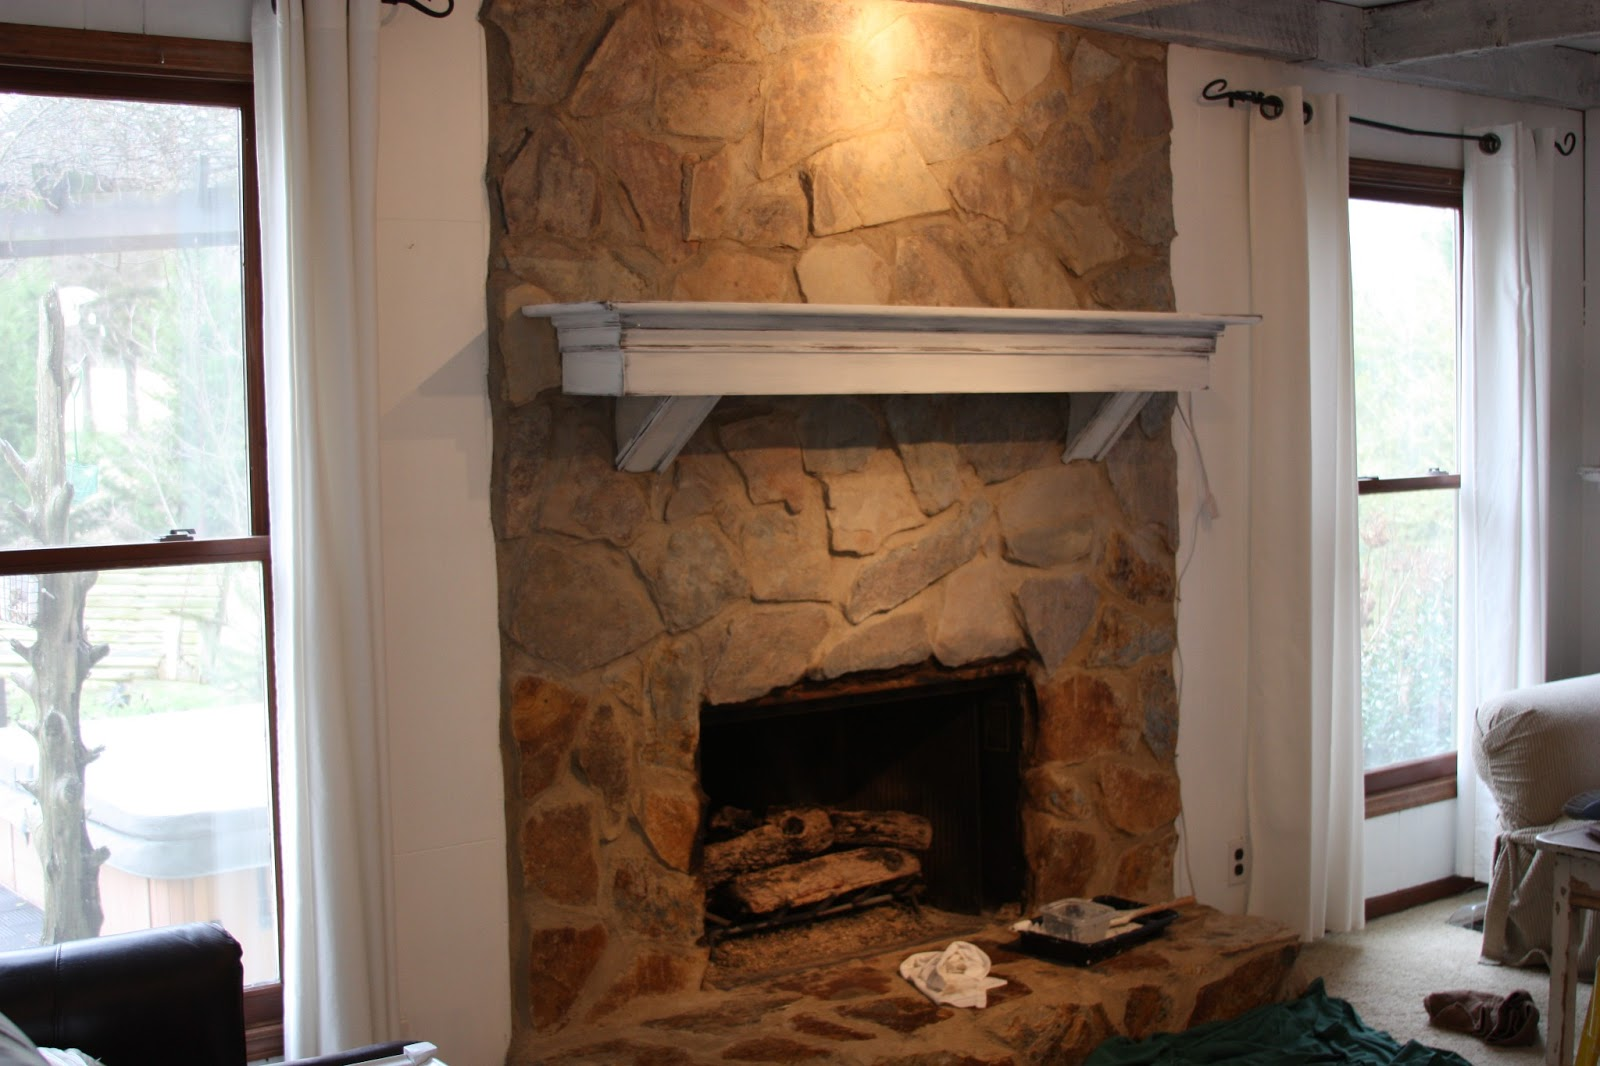 Erin39s Art And Gardens Painted Stone Fireplace Before And